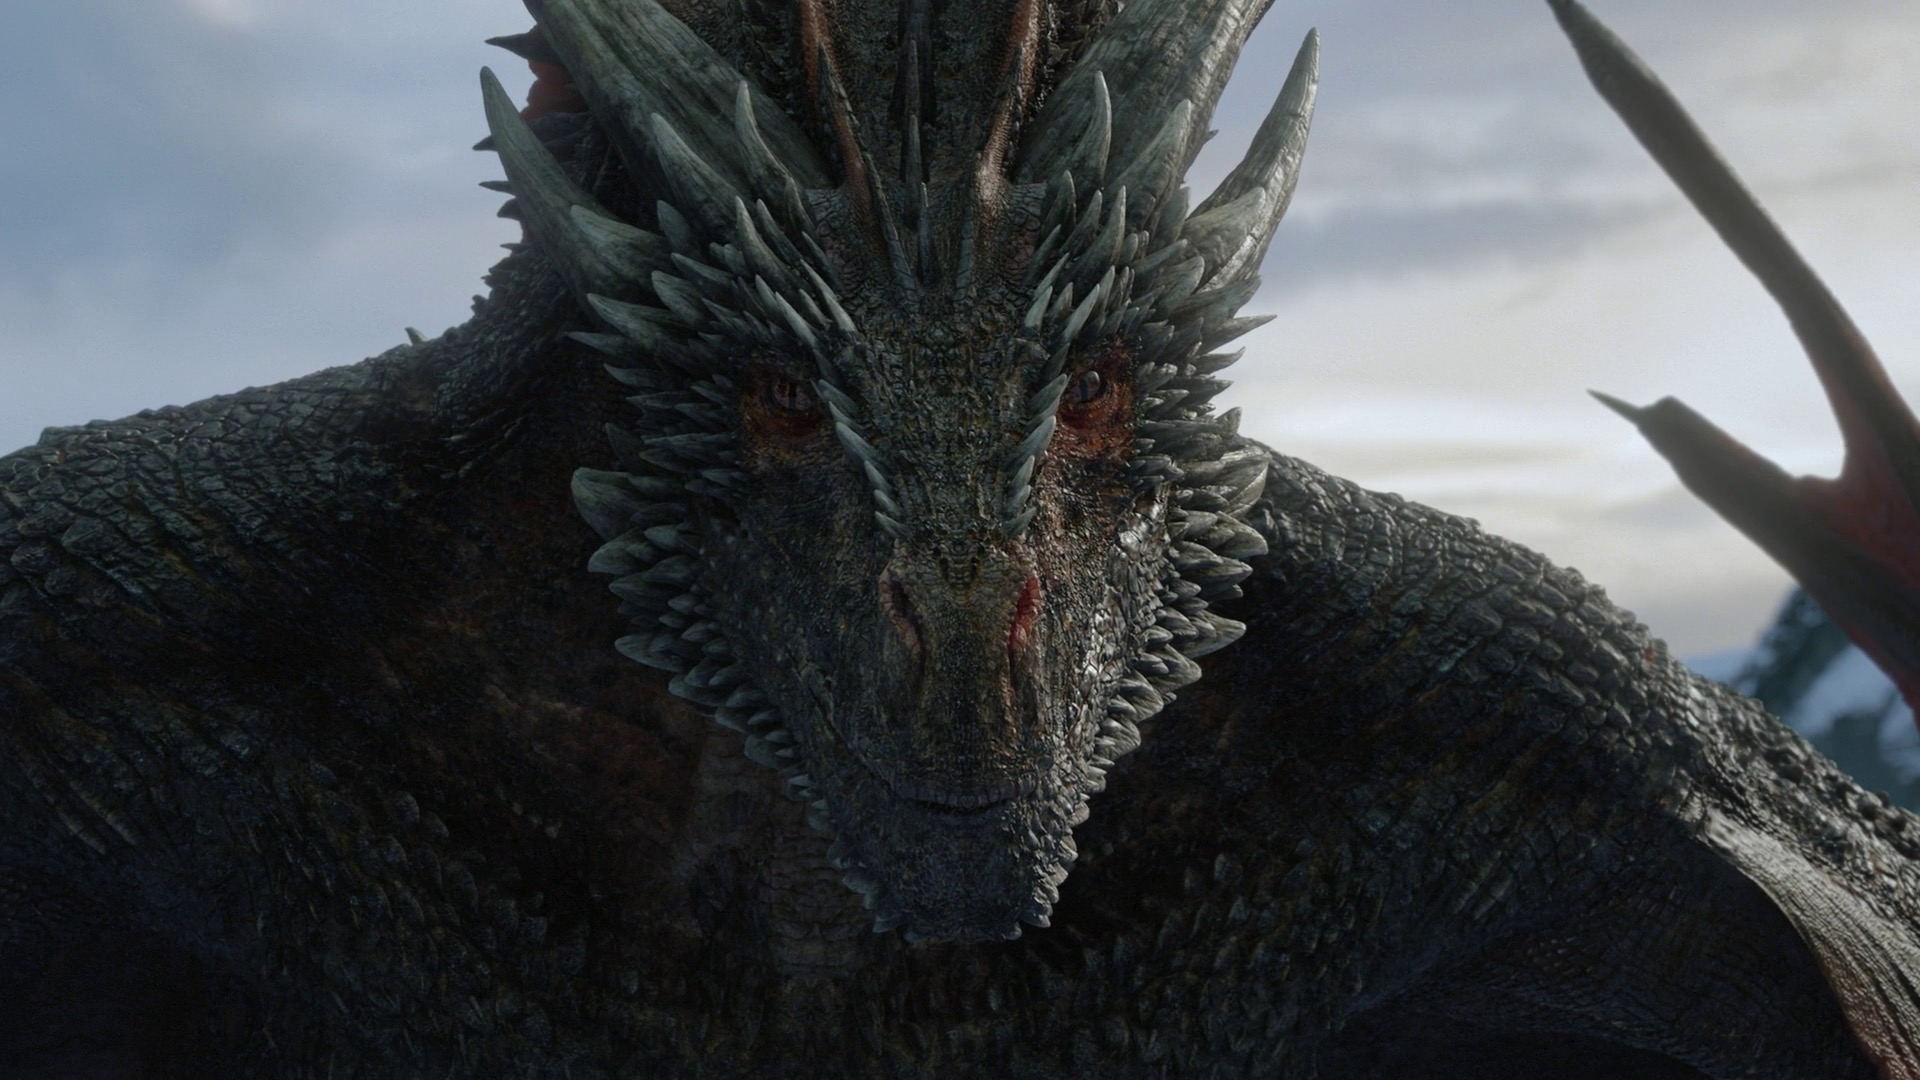 HBO orders Targaryen Game of Thrones prequel House of the Dragon